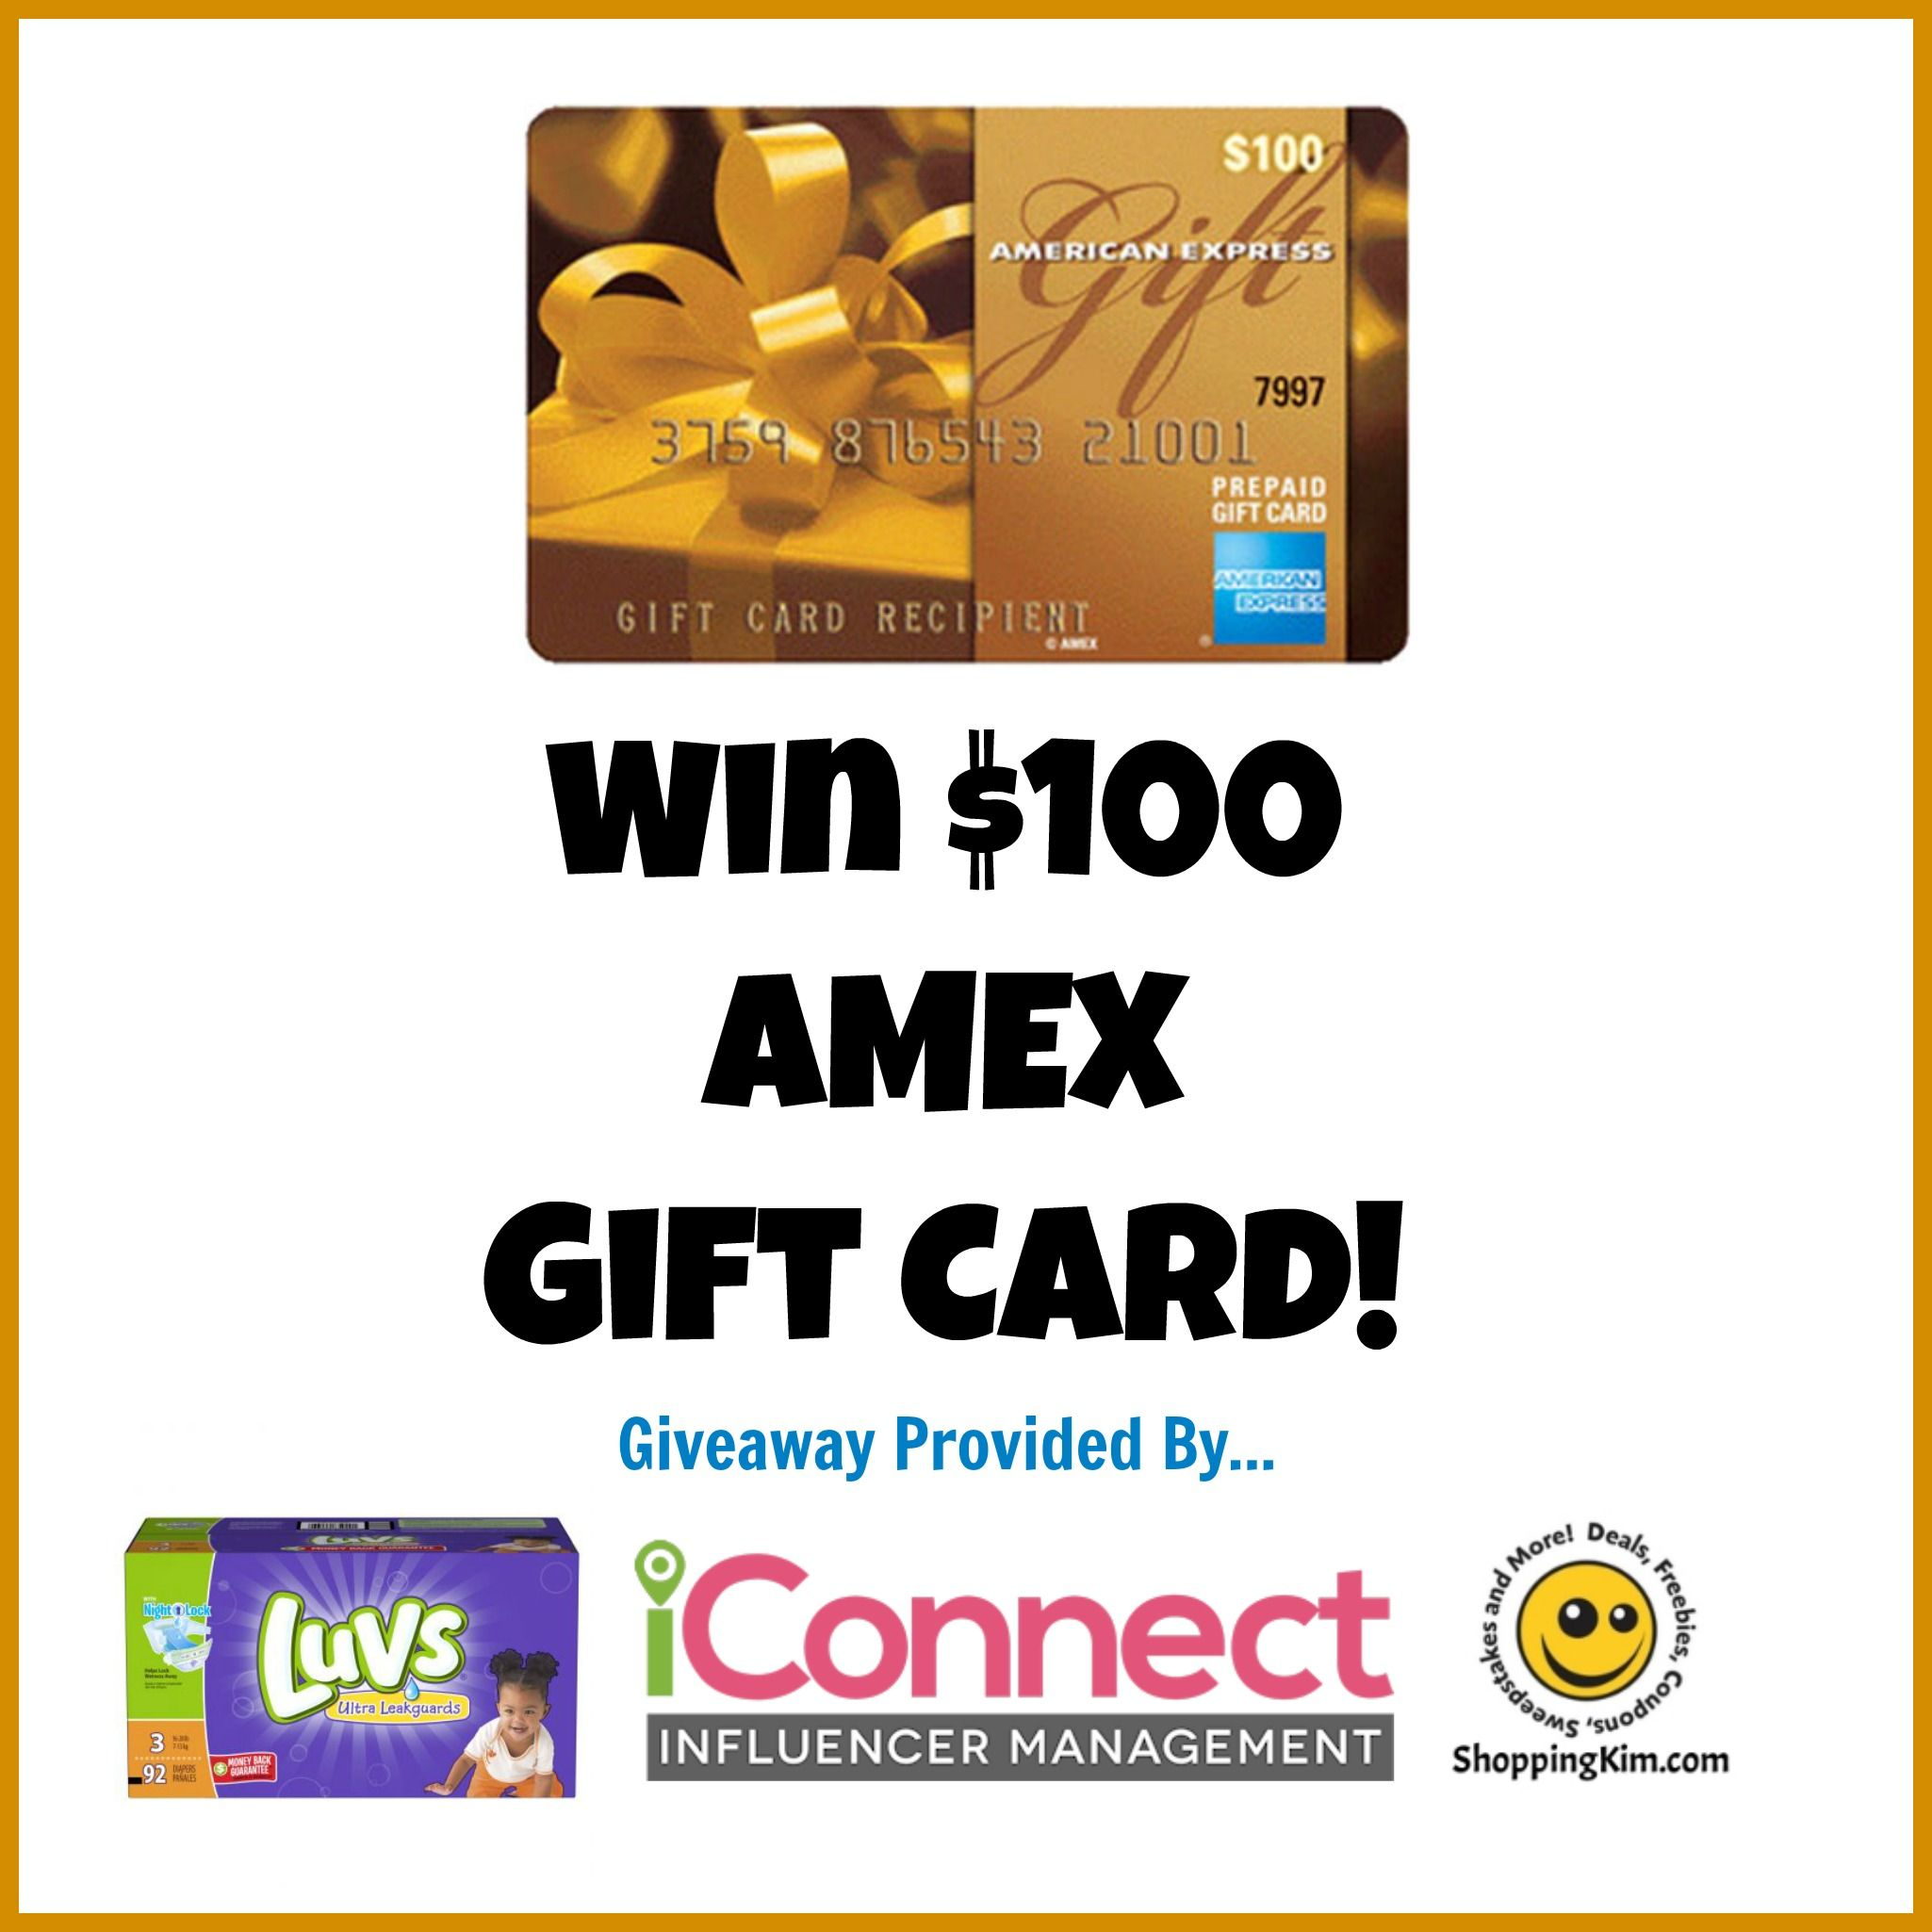 #SharetheLuv @Luvs Diapers $2 Coupon + $100 AMEX Gift Card Giveaway #ad